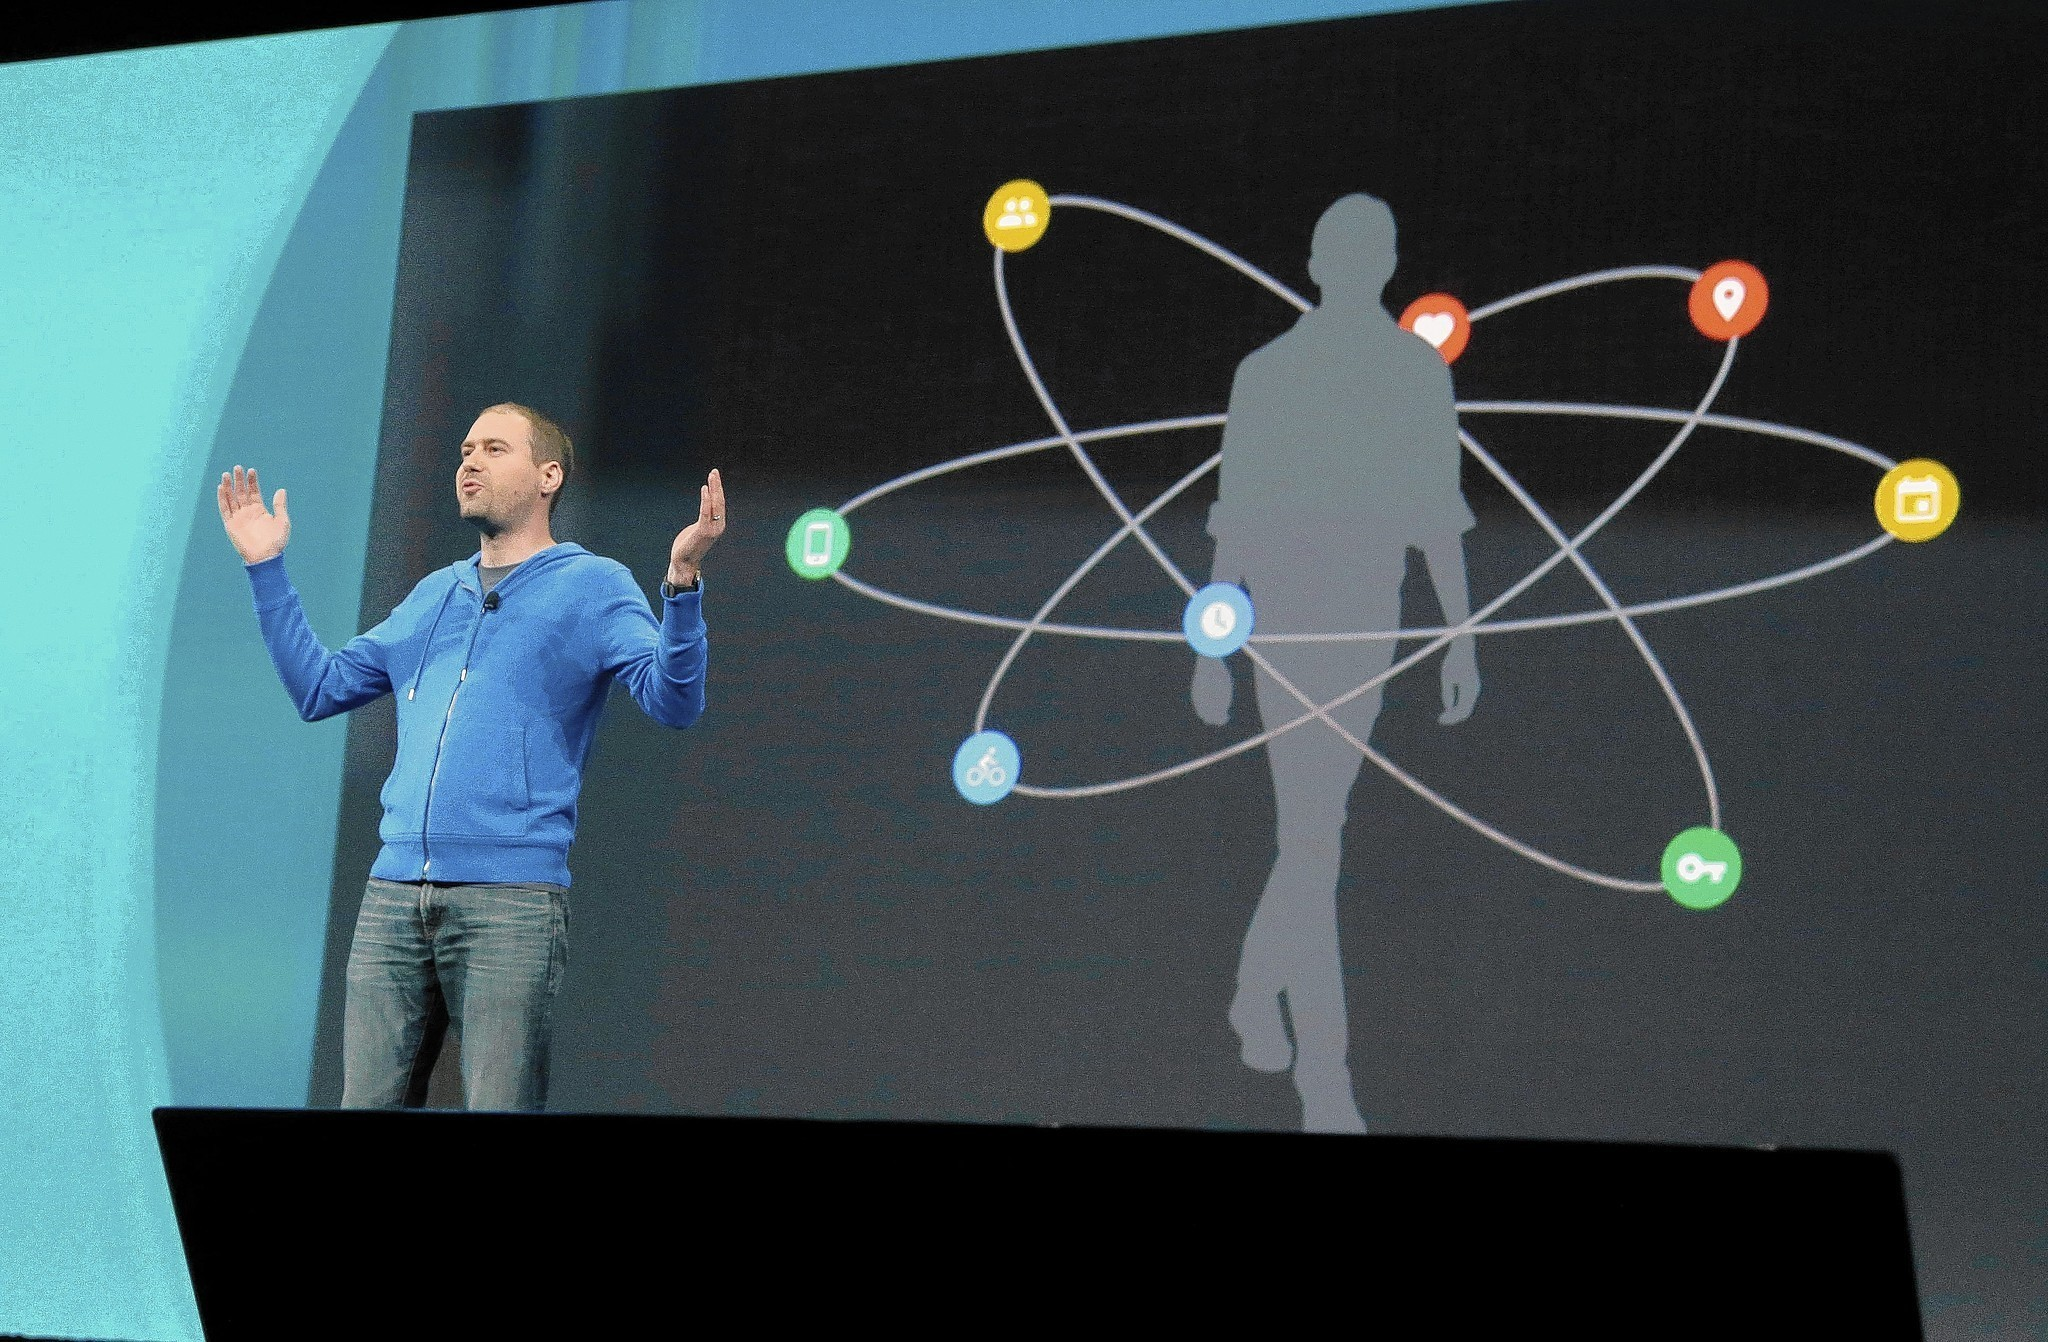 Google unveils products, updates that tie everything together